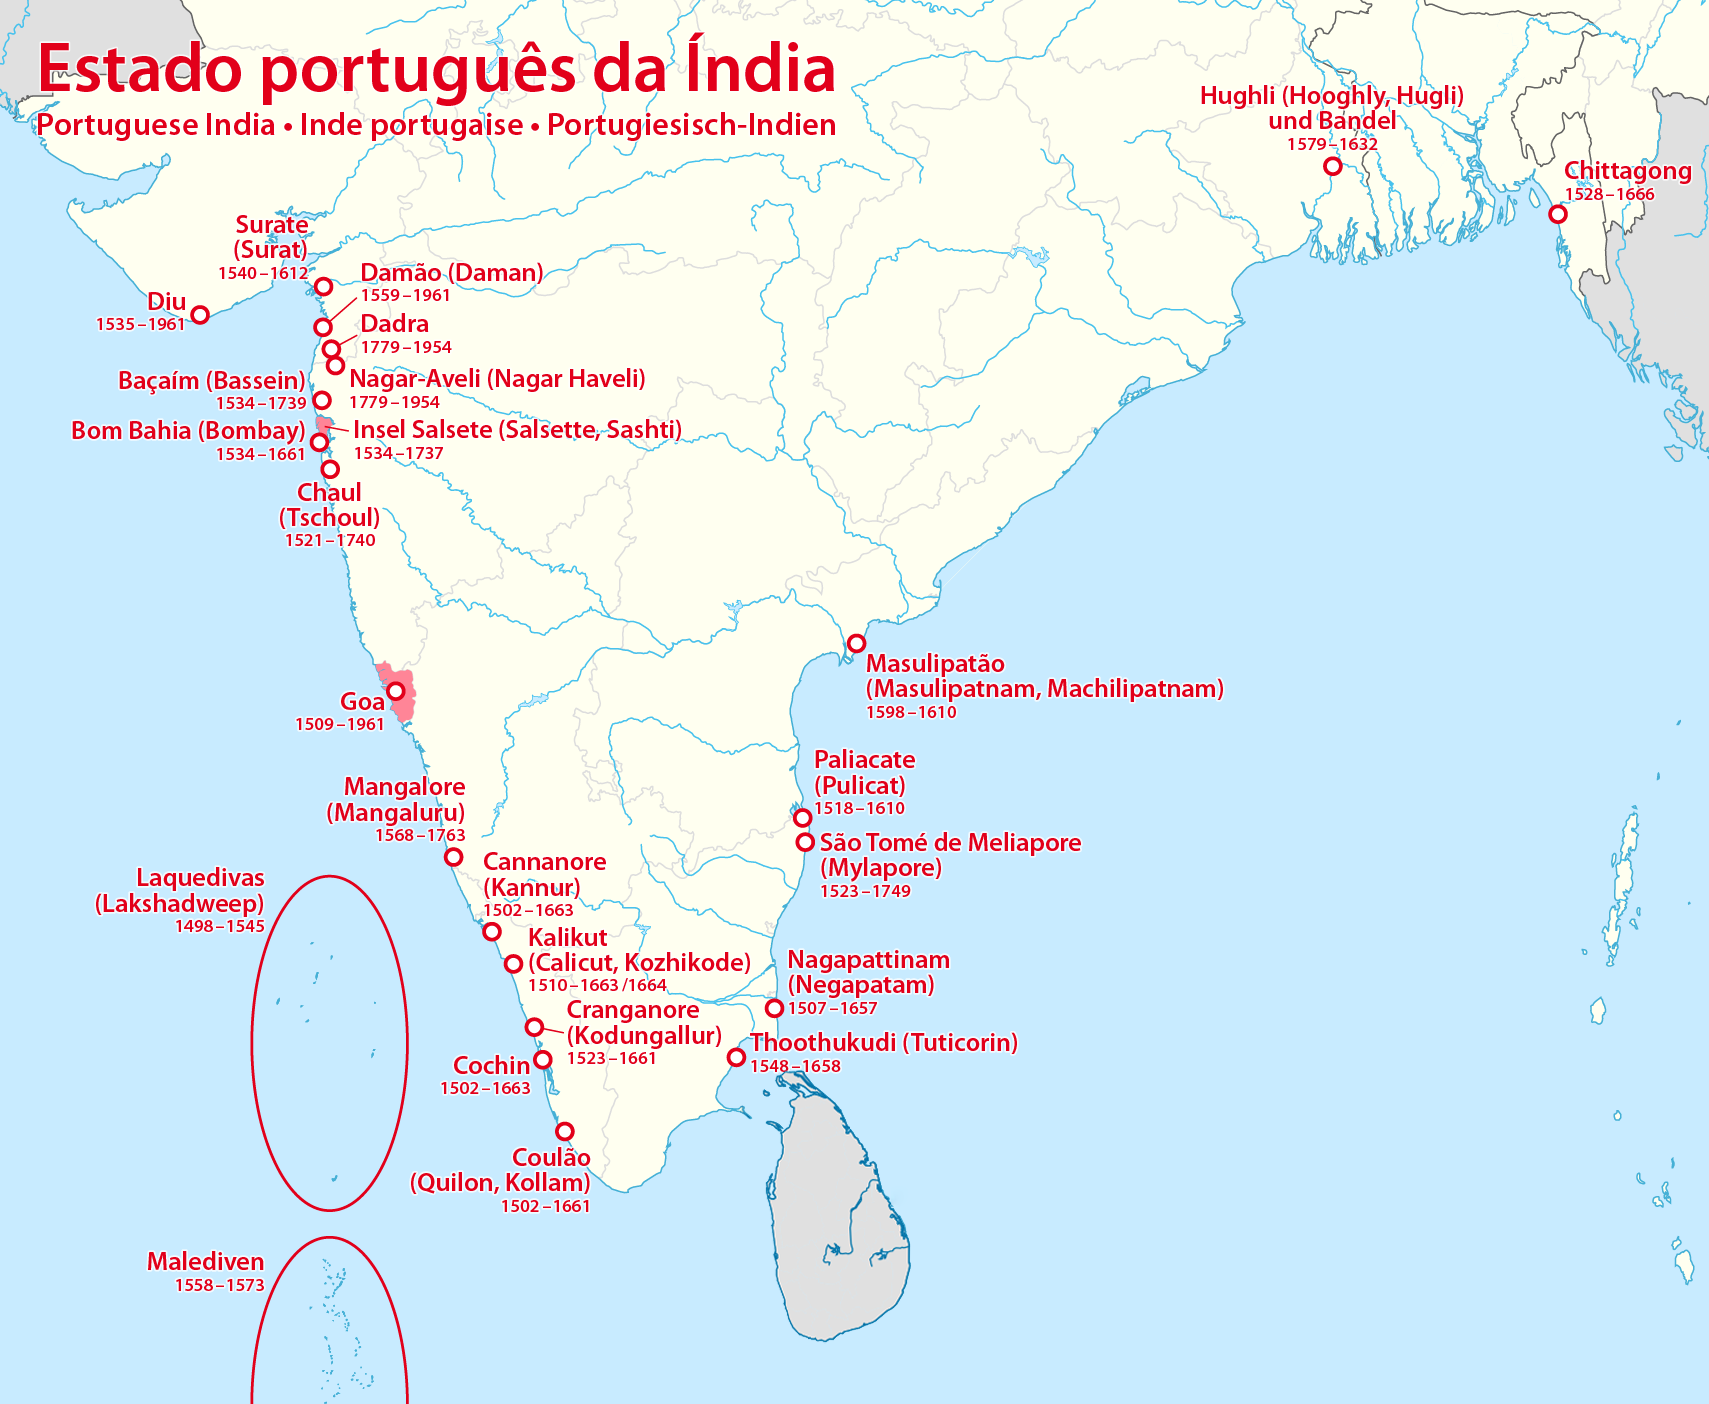 FileMap Of Portuguese Indiapng Wikimedia Commons - Portugal india map